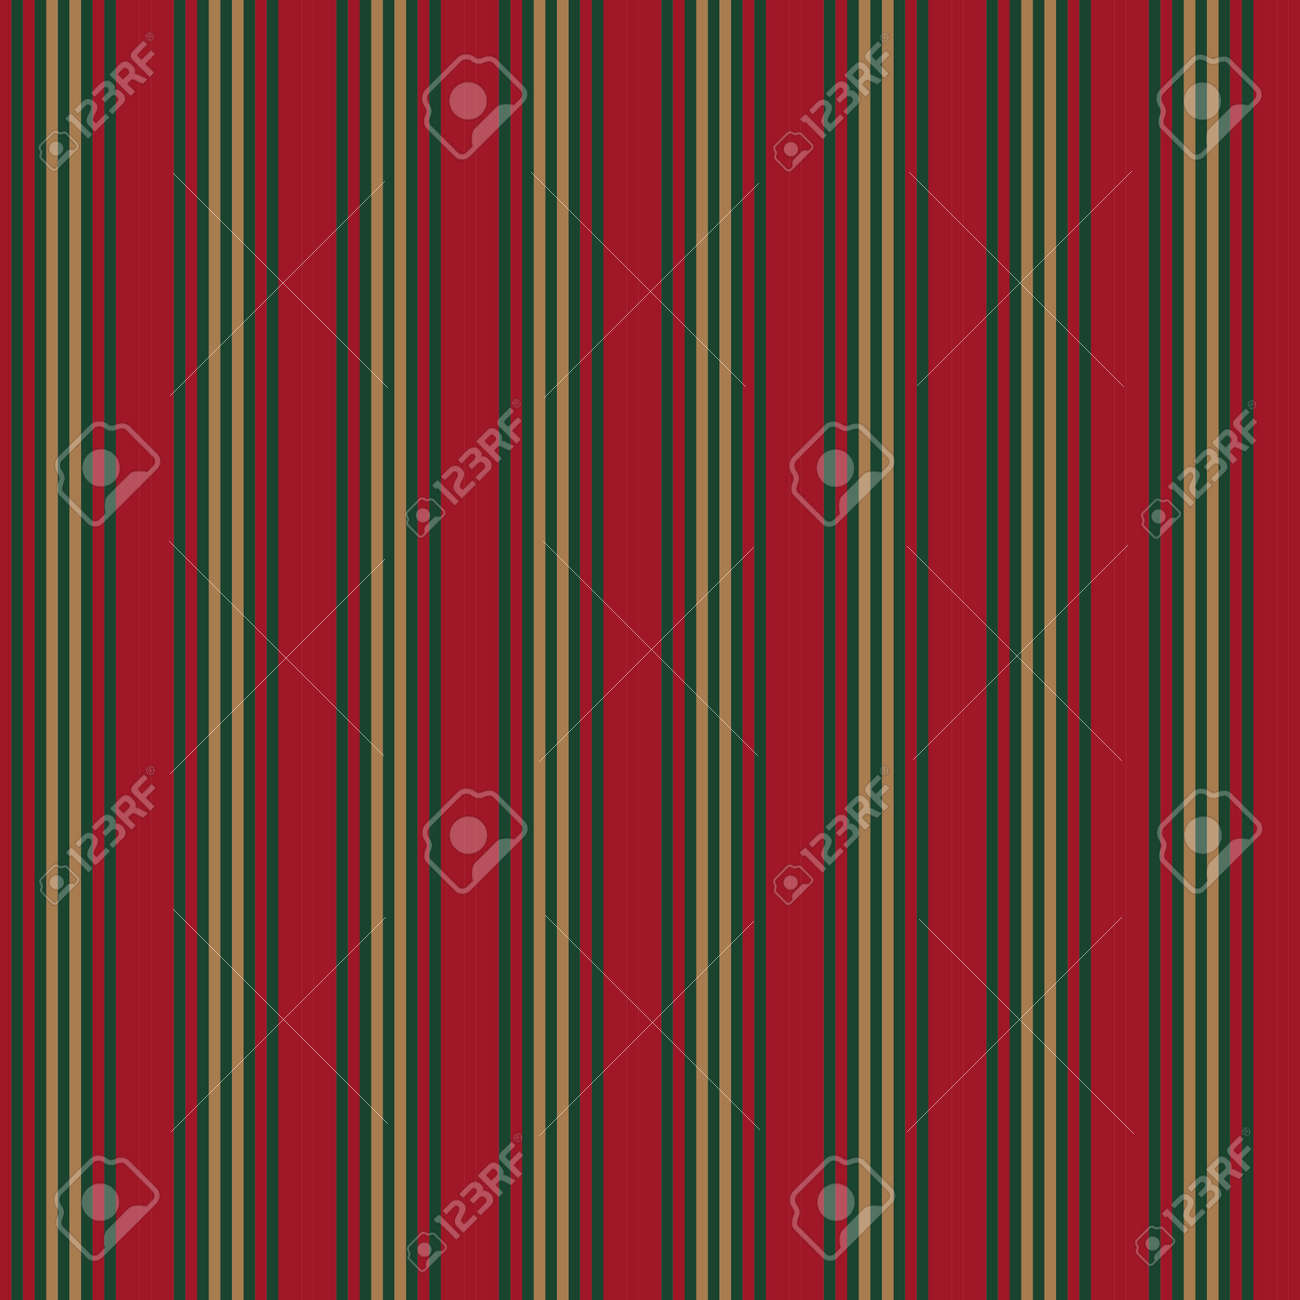 Christmas vertical striped seamless pattern background suitable for fashion textiles, graphics - 157451376